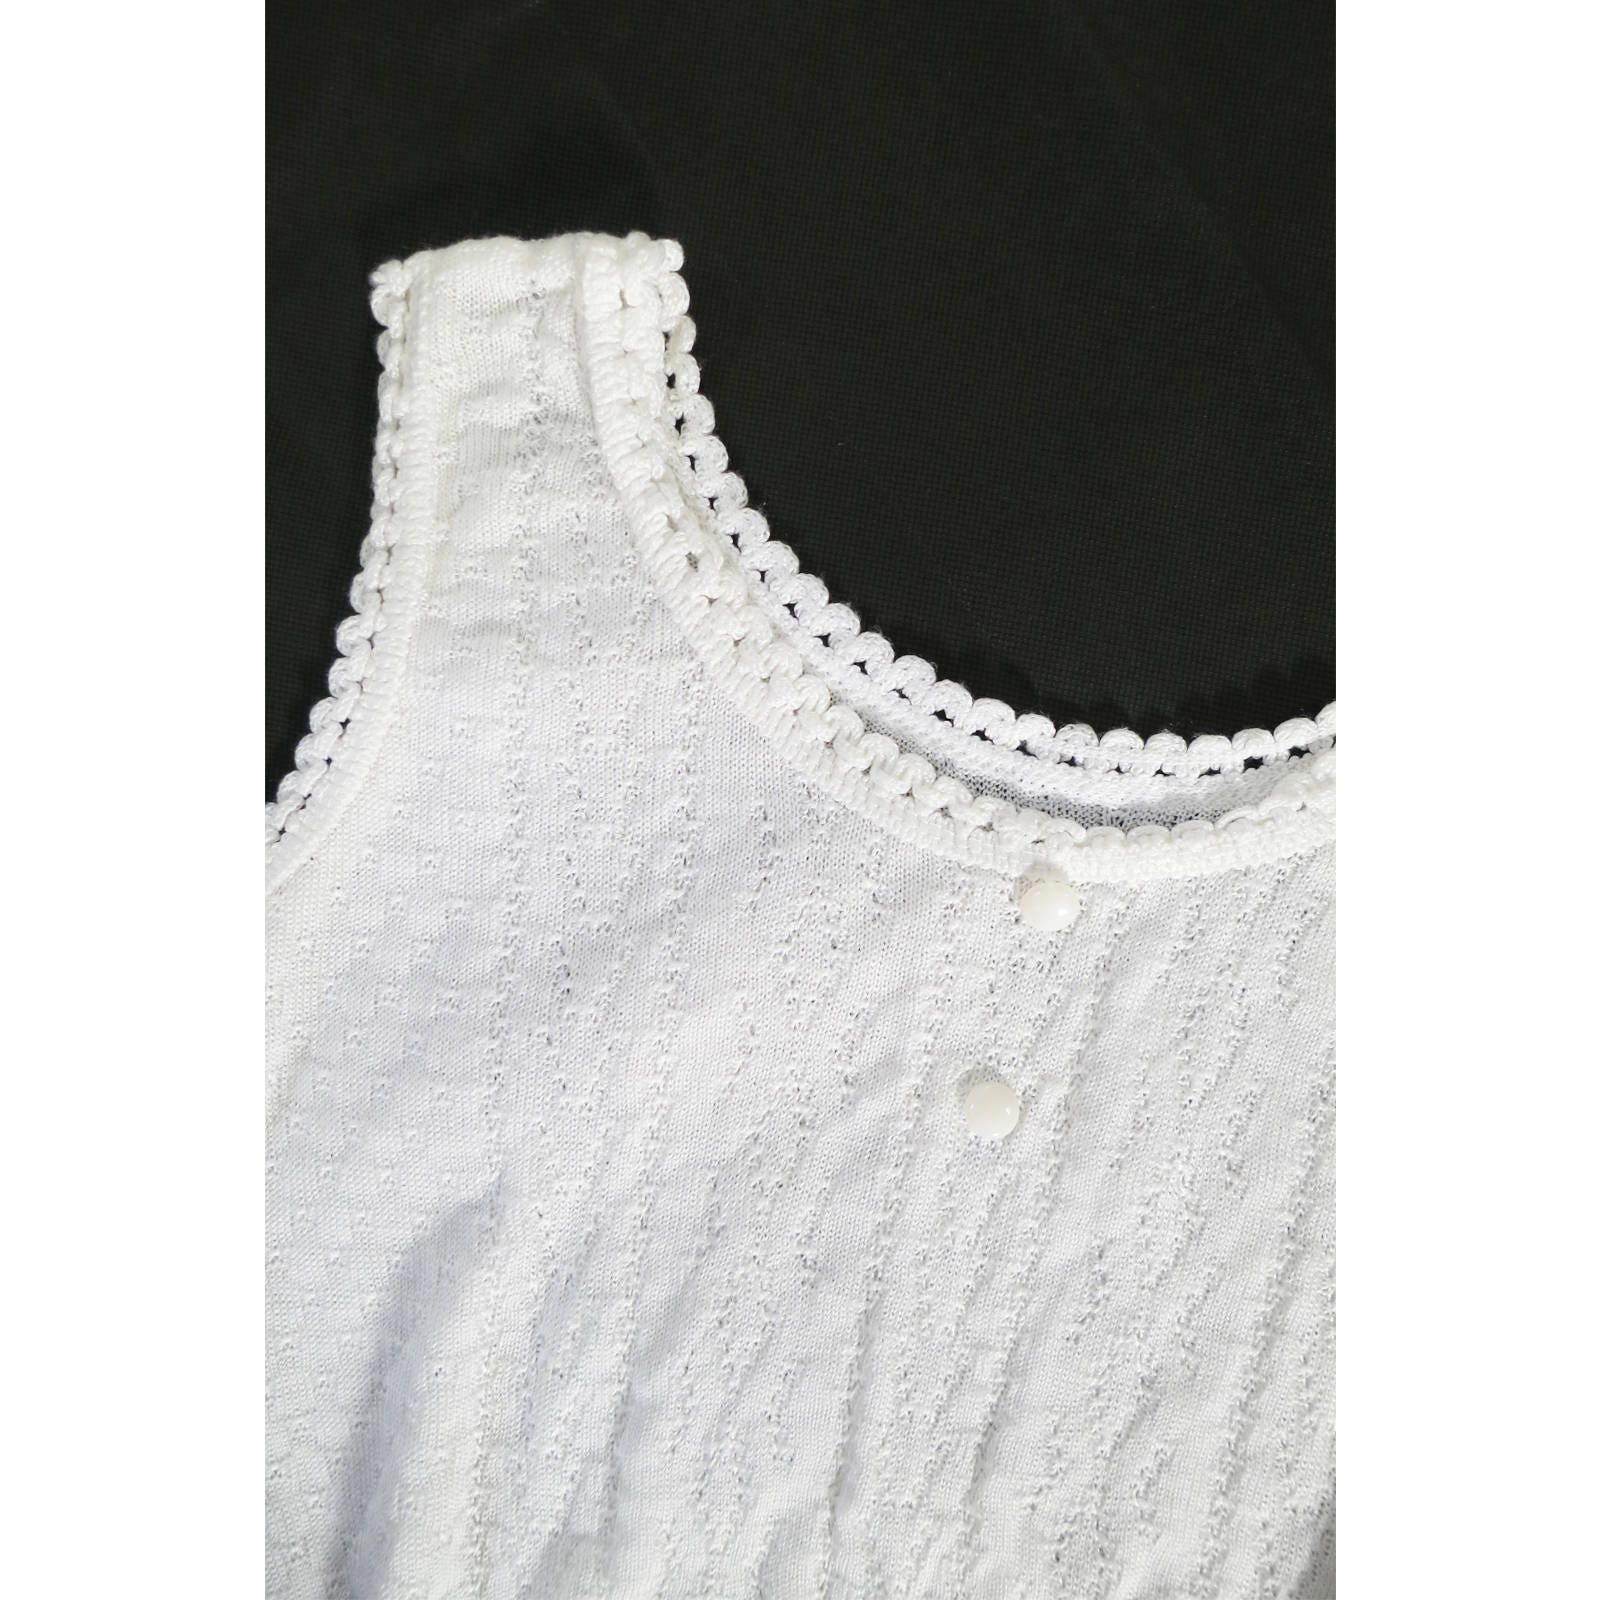 Vintage 90s White Knit Top Vest  Retro Summer Tank Top  Dainty Scallop Trim Knit  Cute Round Neck Sleeveless Top  S Small M Medium